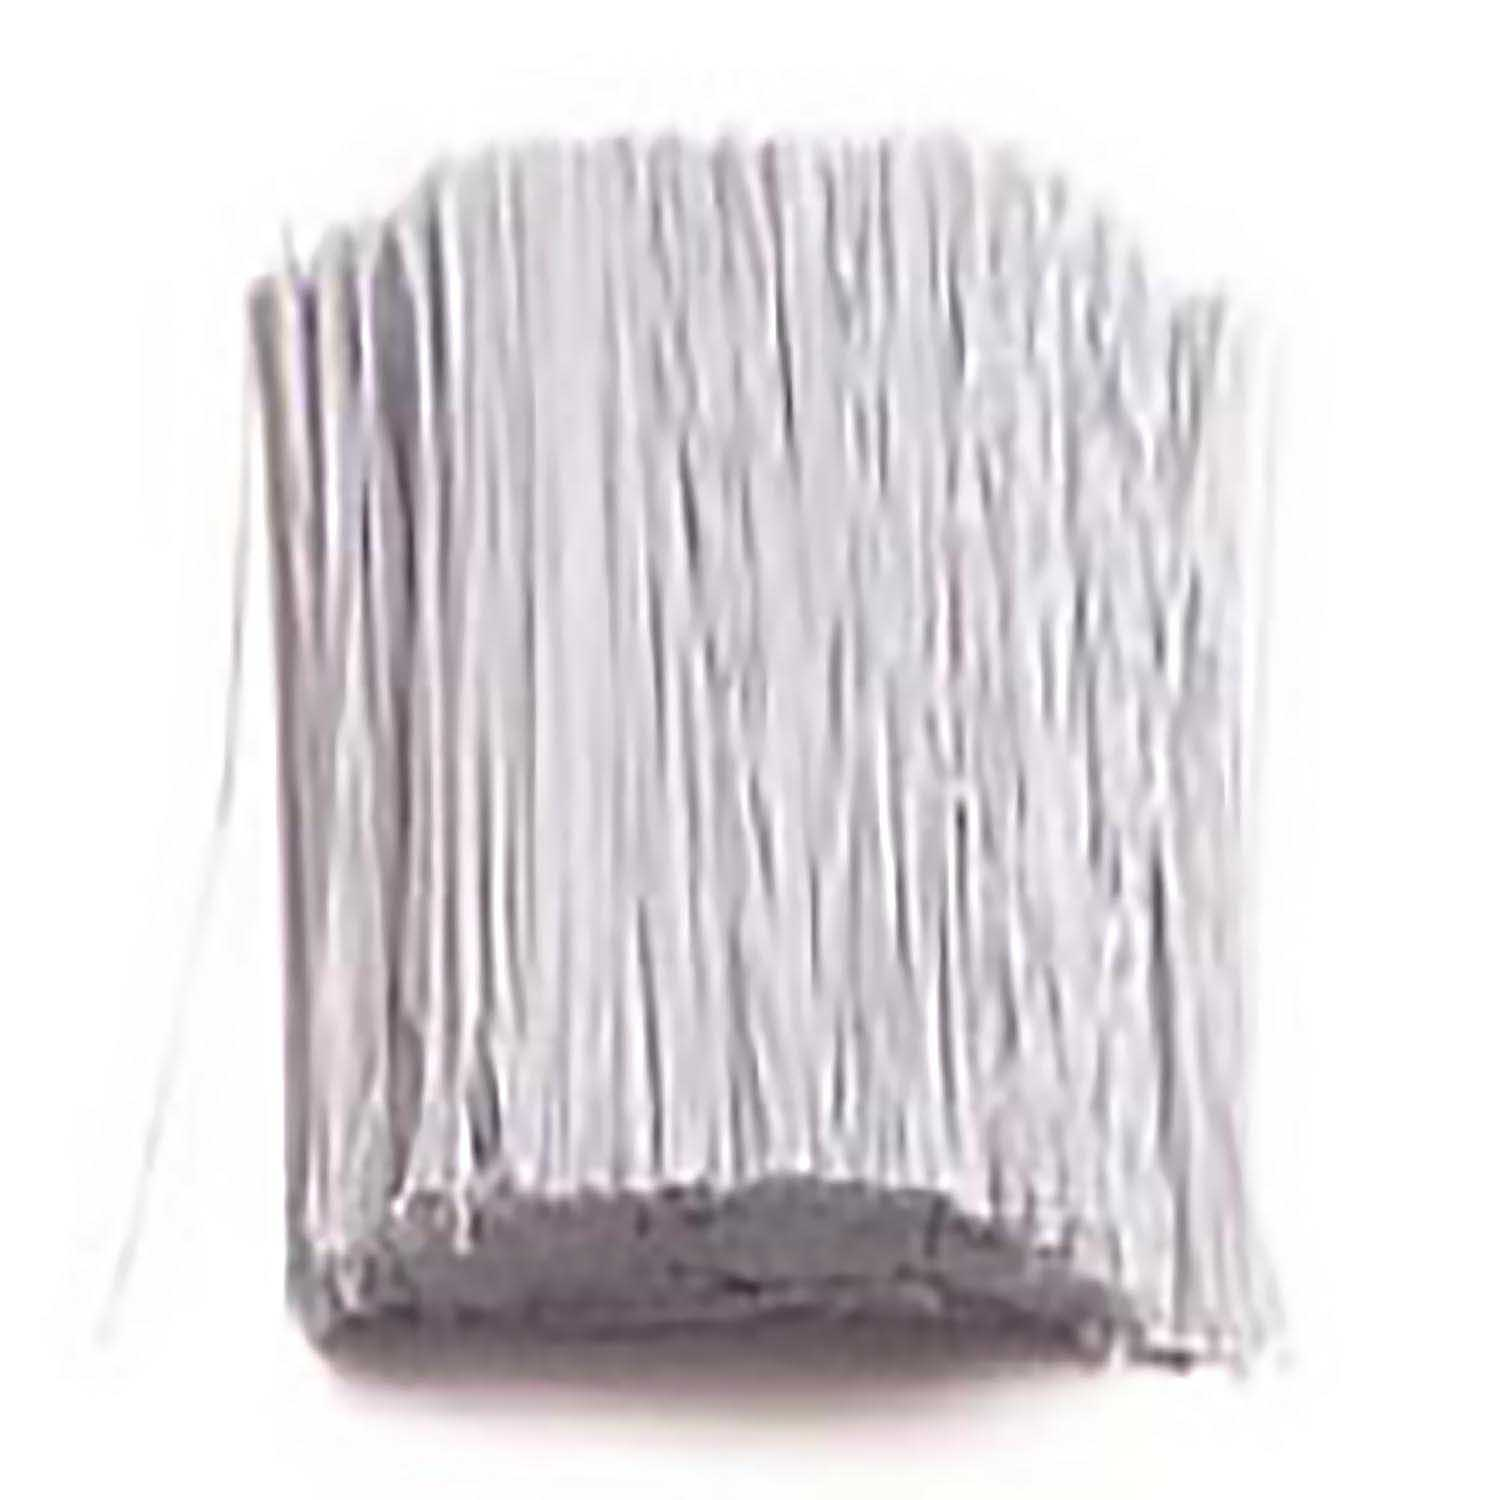 26 Gauge White 6in Covered Wire